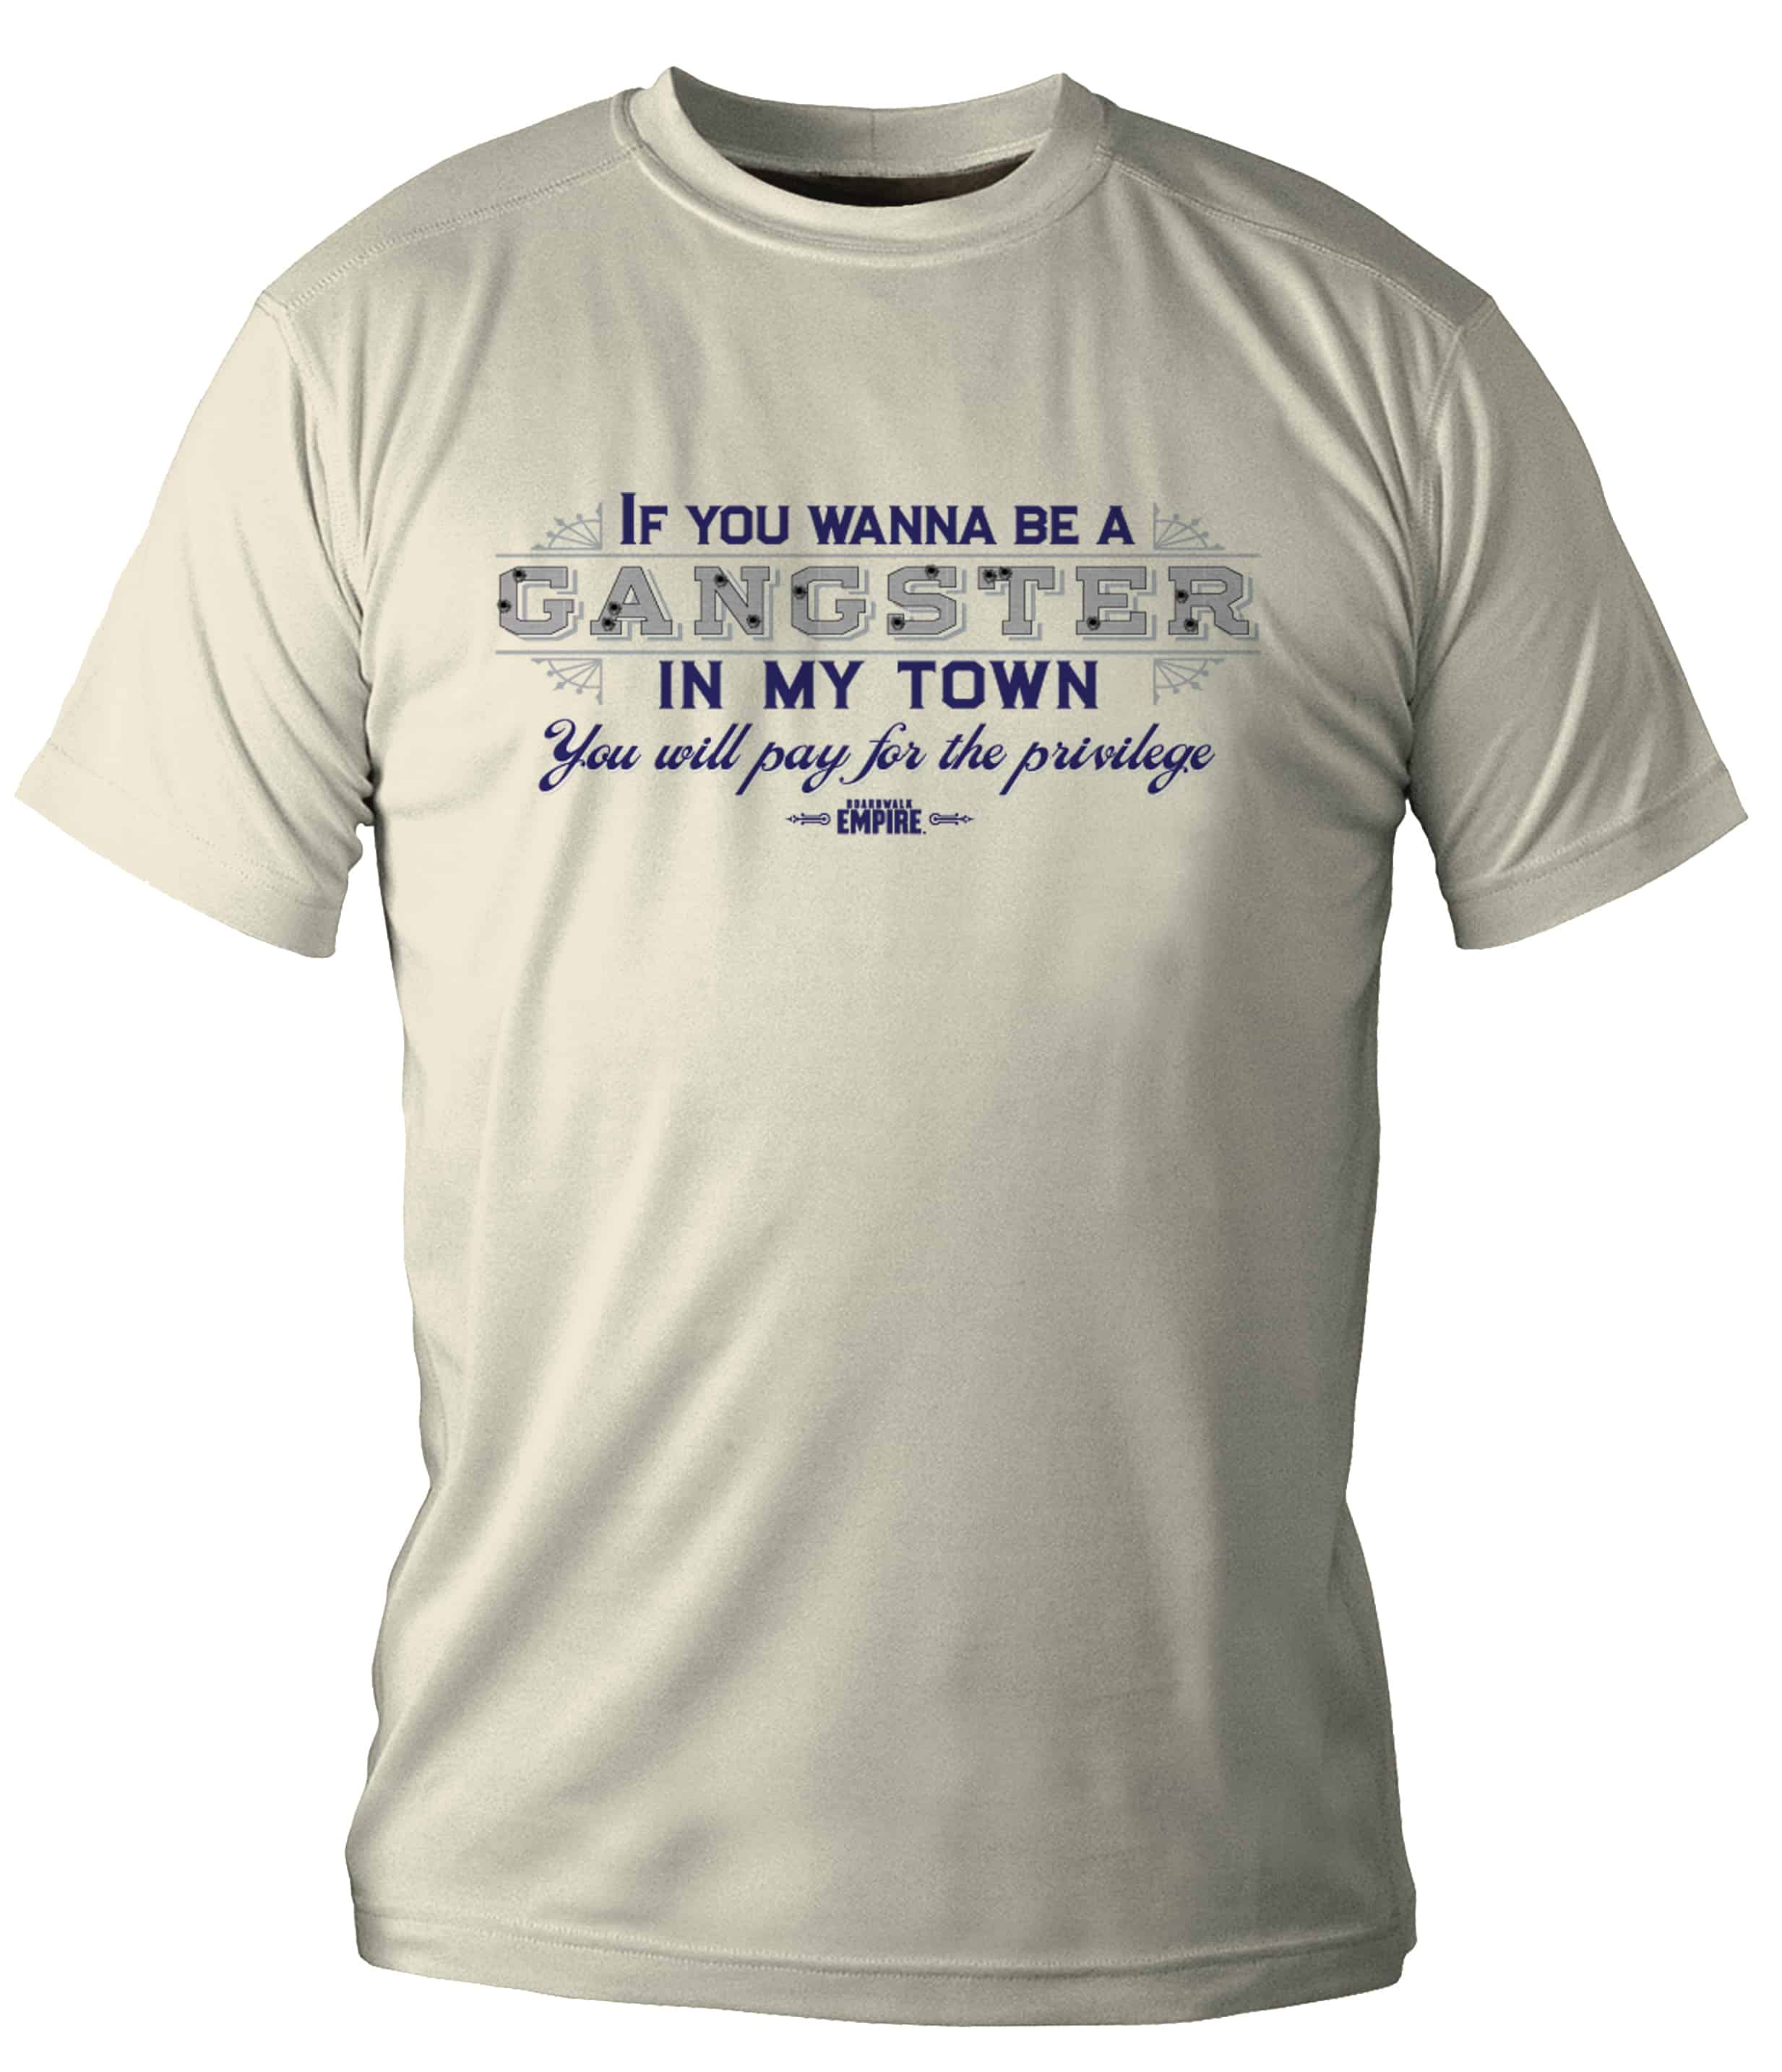 IF YOU WANNA BE A GANGSTER CAMISETA CHICO T-L BOARDWALK EMPIRE